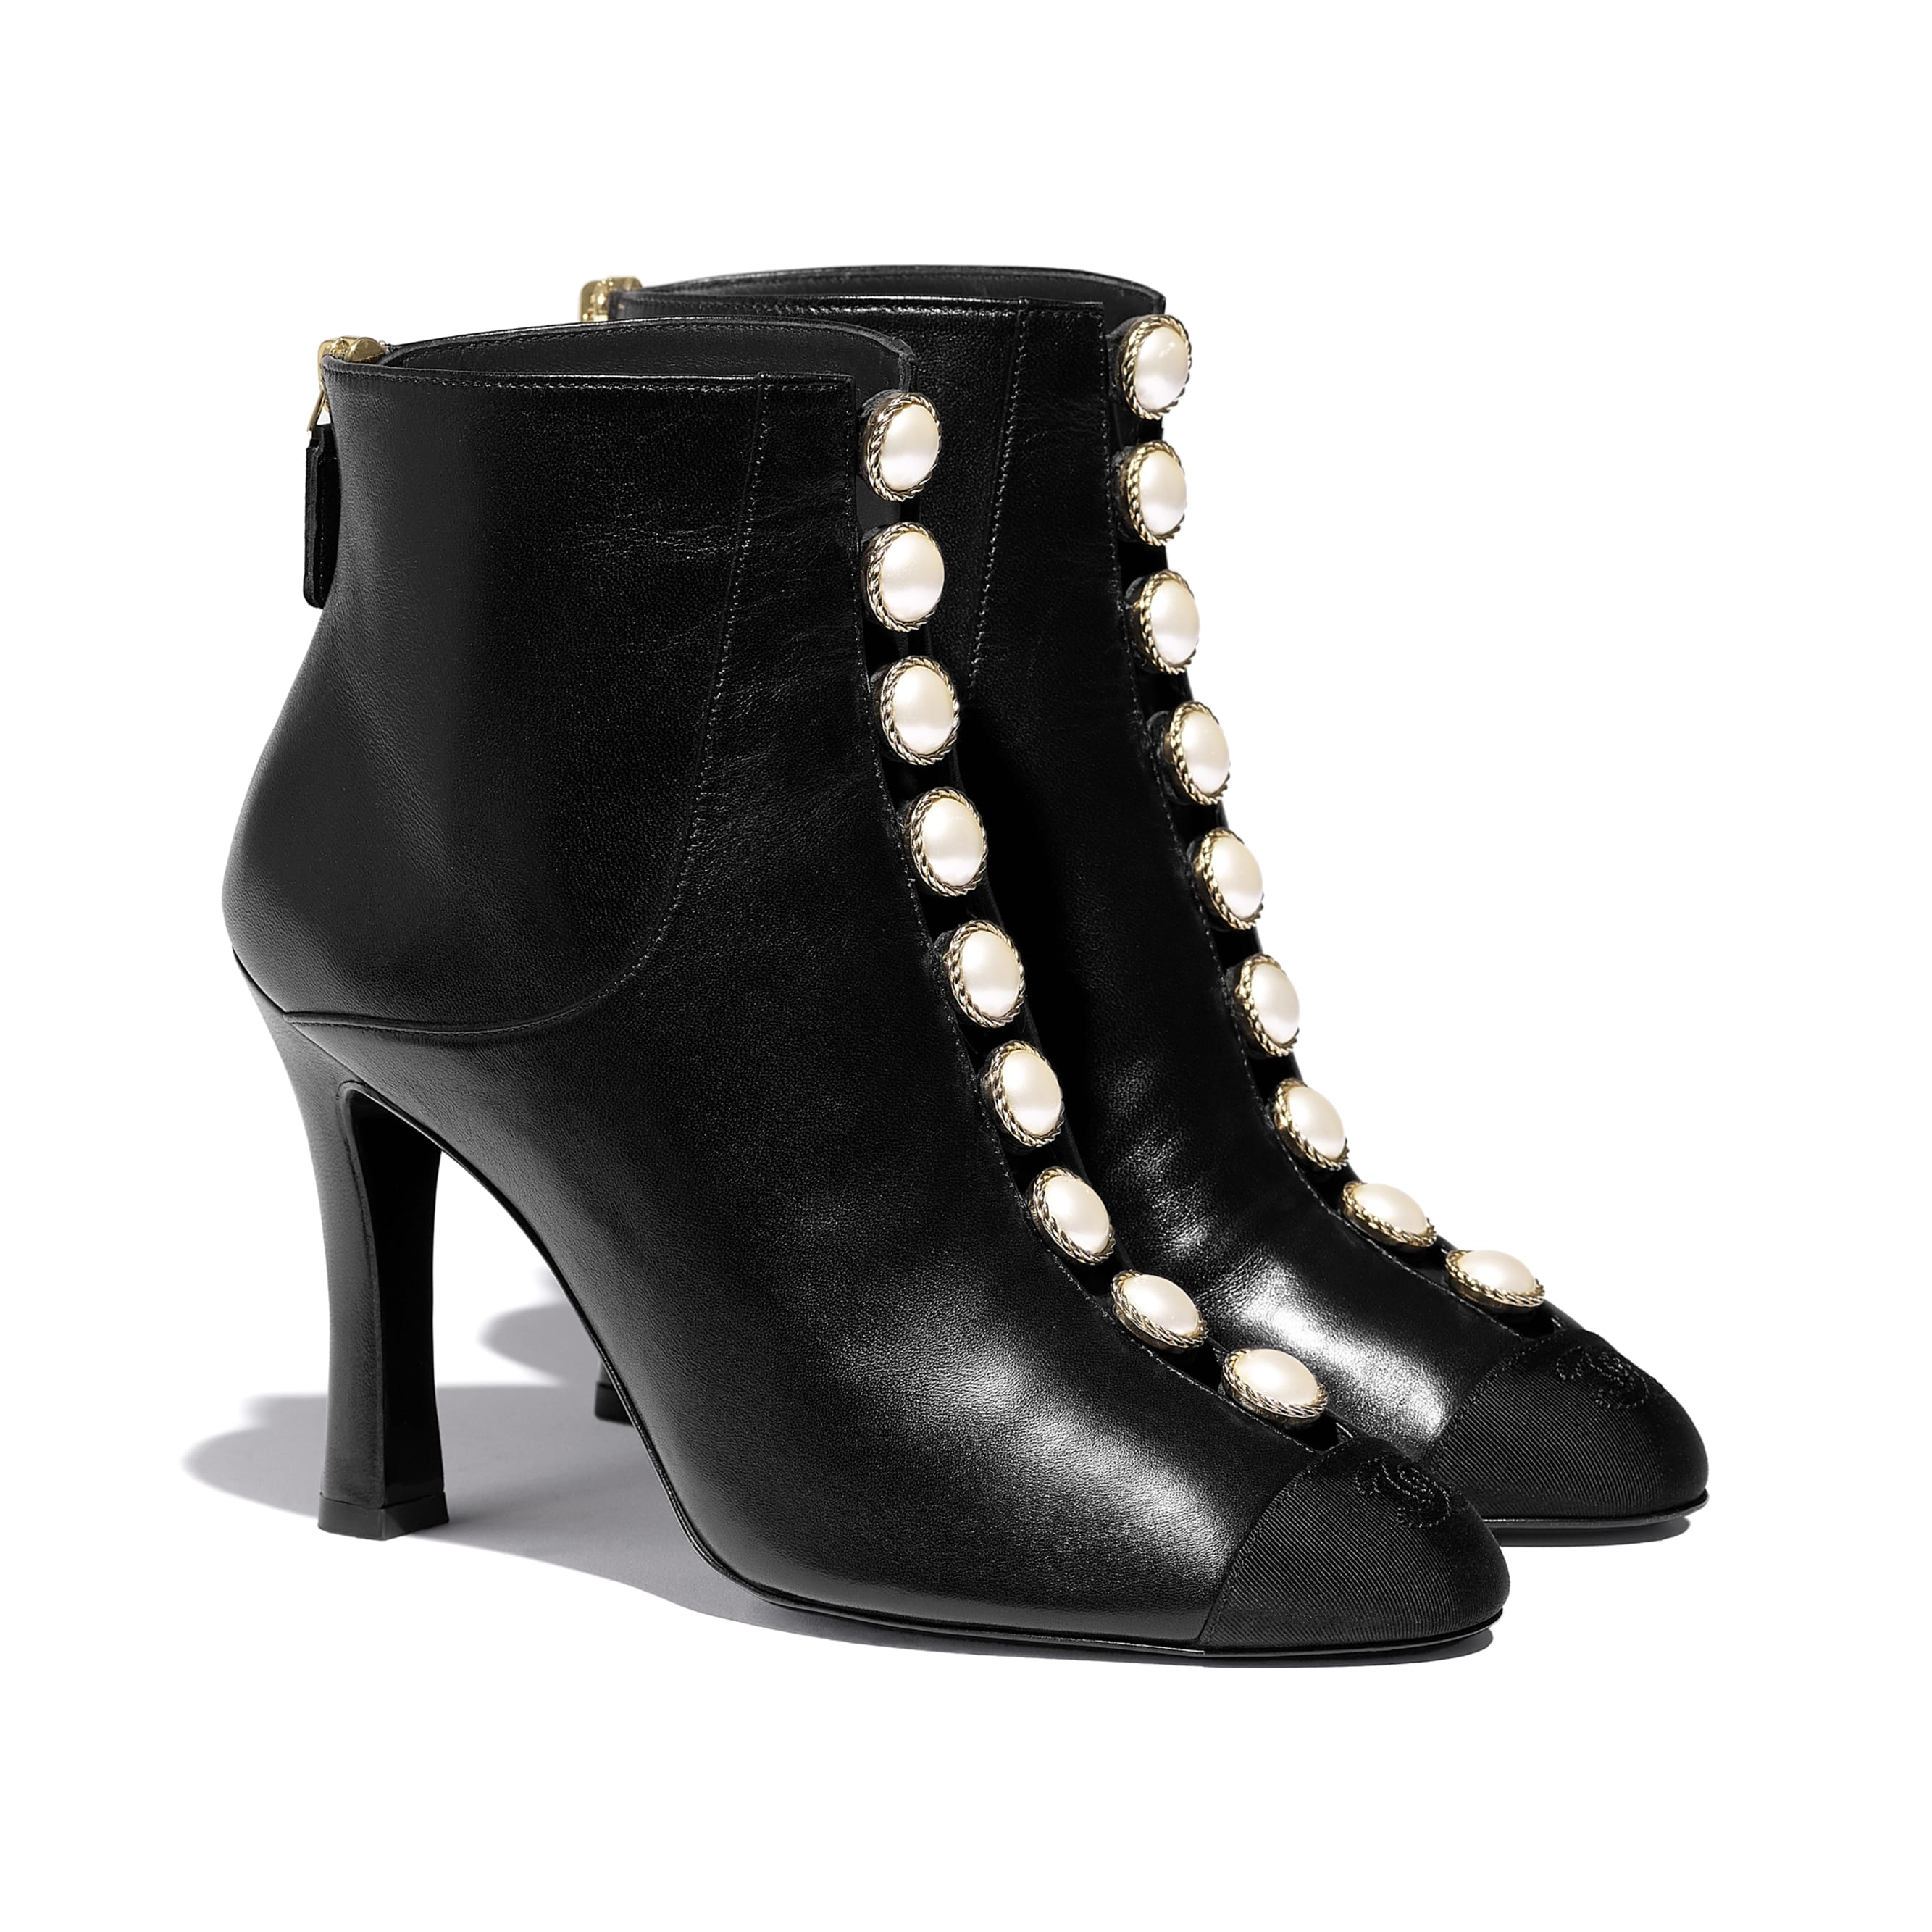 Ankle Boots - Black - Lambskin & Grosgrain - CHANEL - Alternative view - see standard sized version